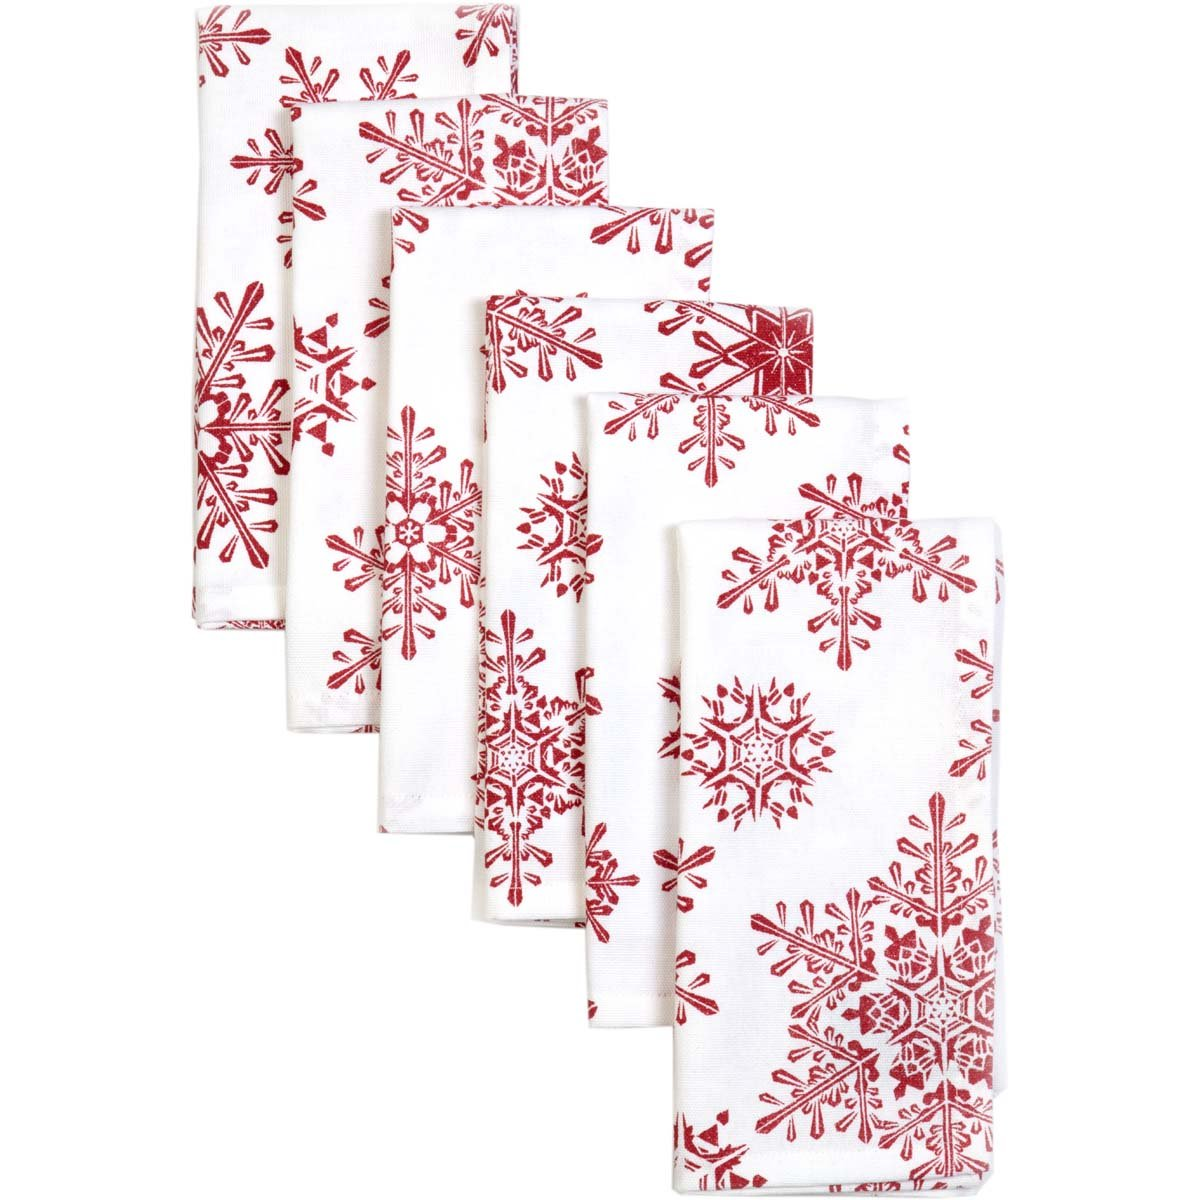 VHC Brands Christmas Holiday Tabletop & Kitchen-Snowflake White Napkin Set of 6, Red 38601